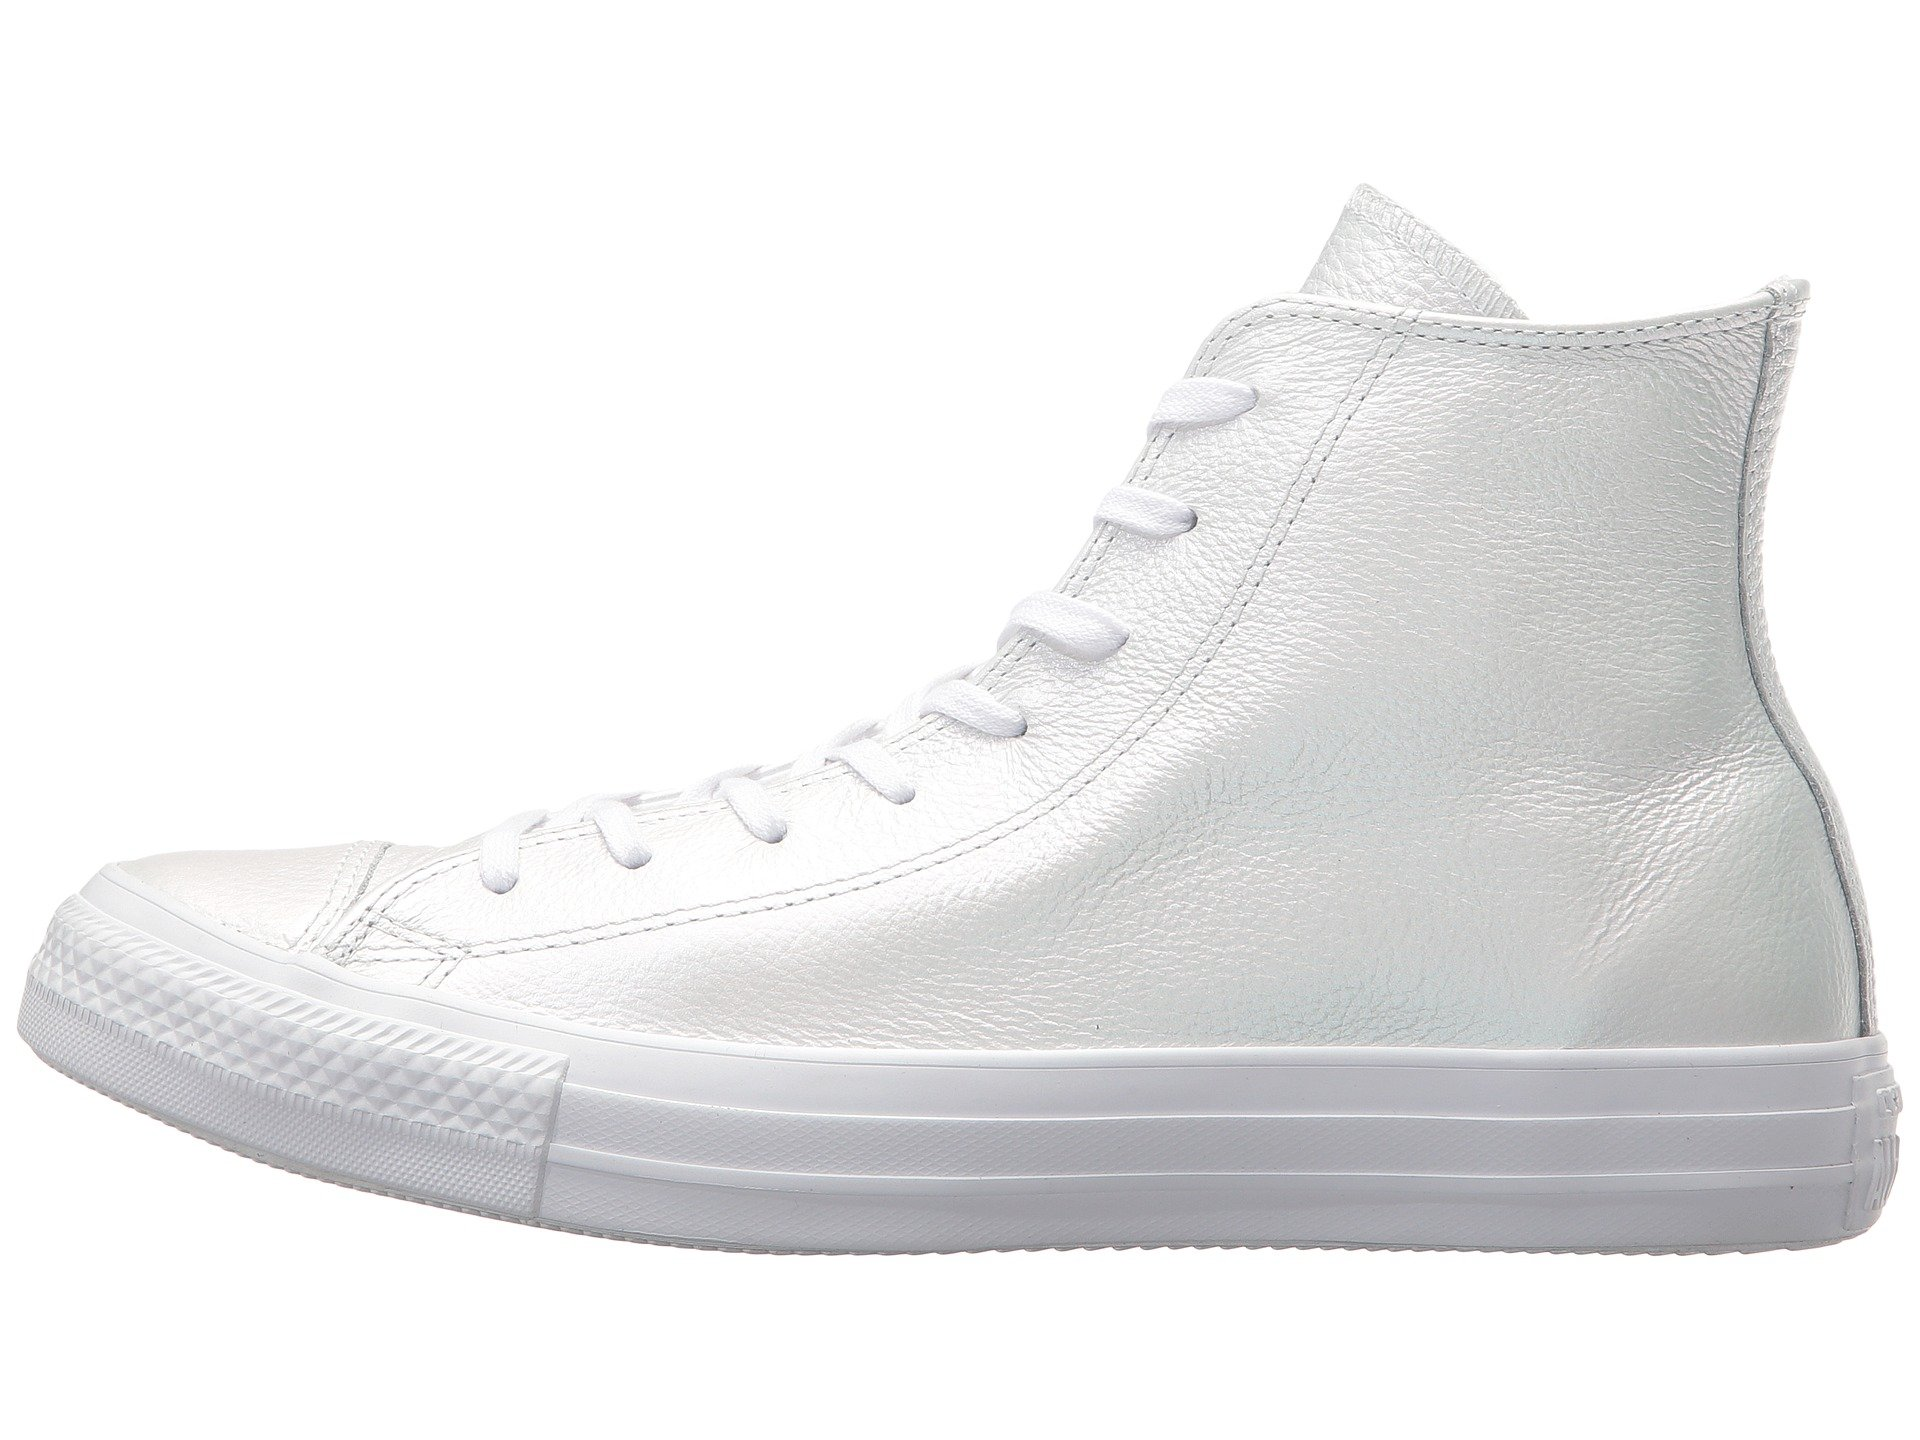 converse chuck taylor white leather